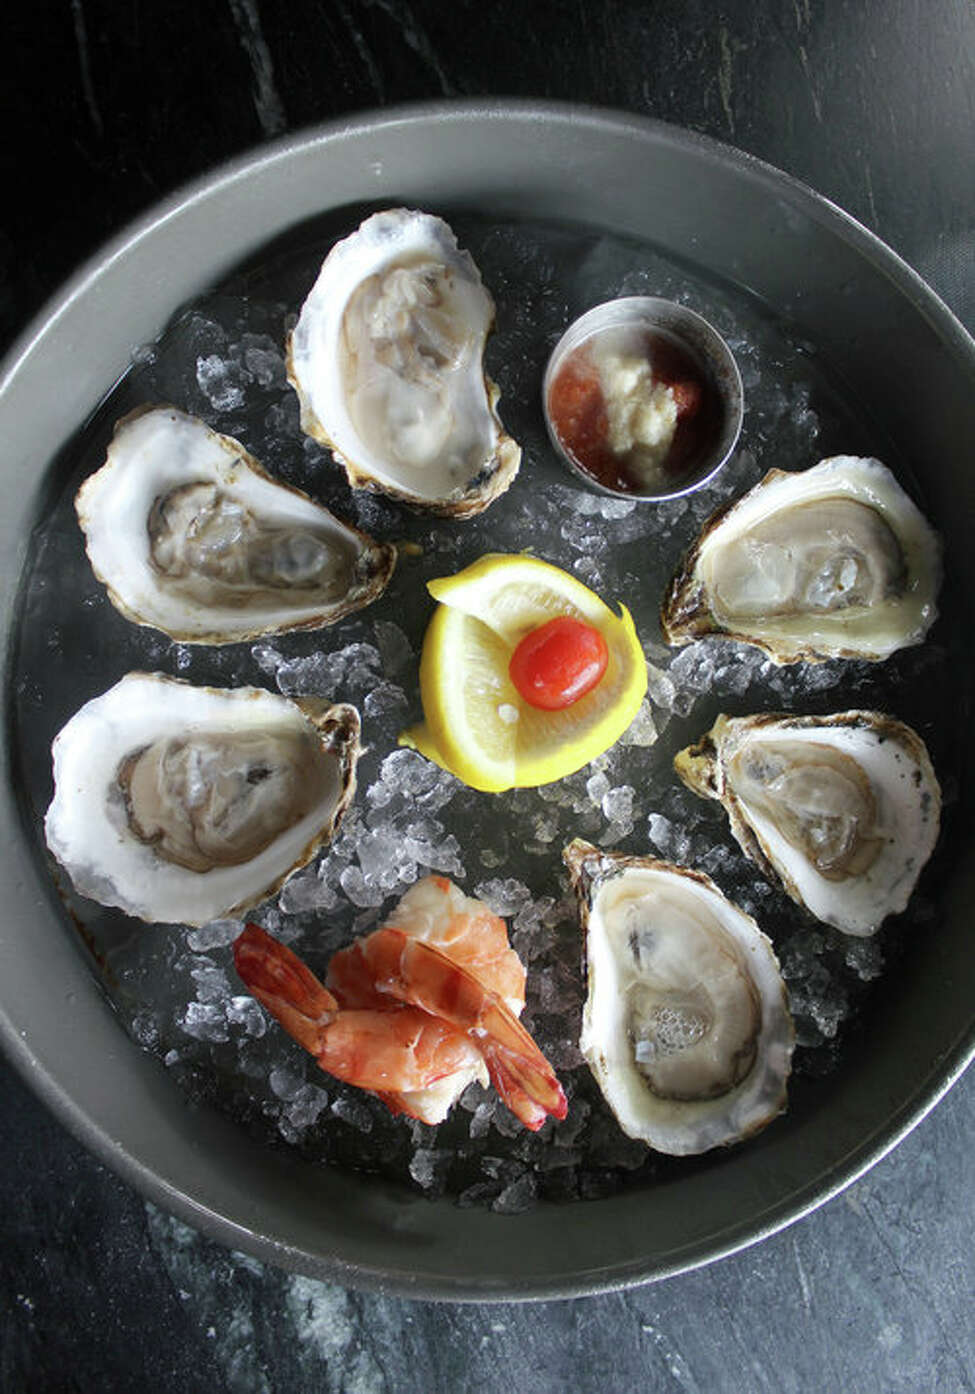 Albany Ale & Oyster, 281 New Scotland Ave., Albany. 518-487-4152. albanyaleandoyster.com. 11 a.m. to 11 p.m. Monday to Saturday, noon to 11 p.m. Sunday. $. Handicapped-accessible. Street parking.